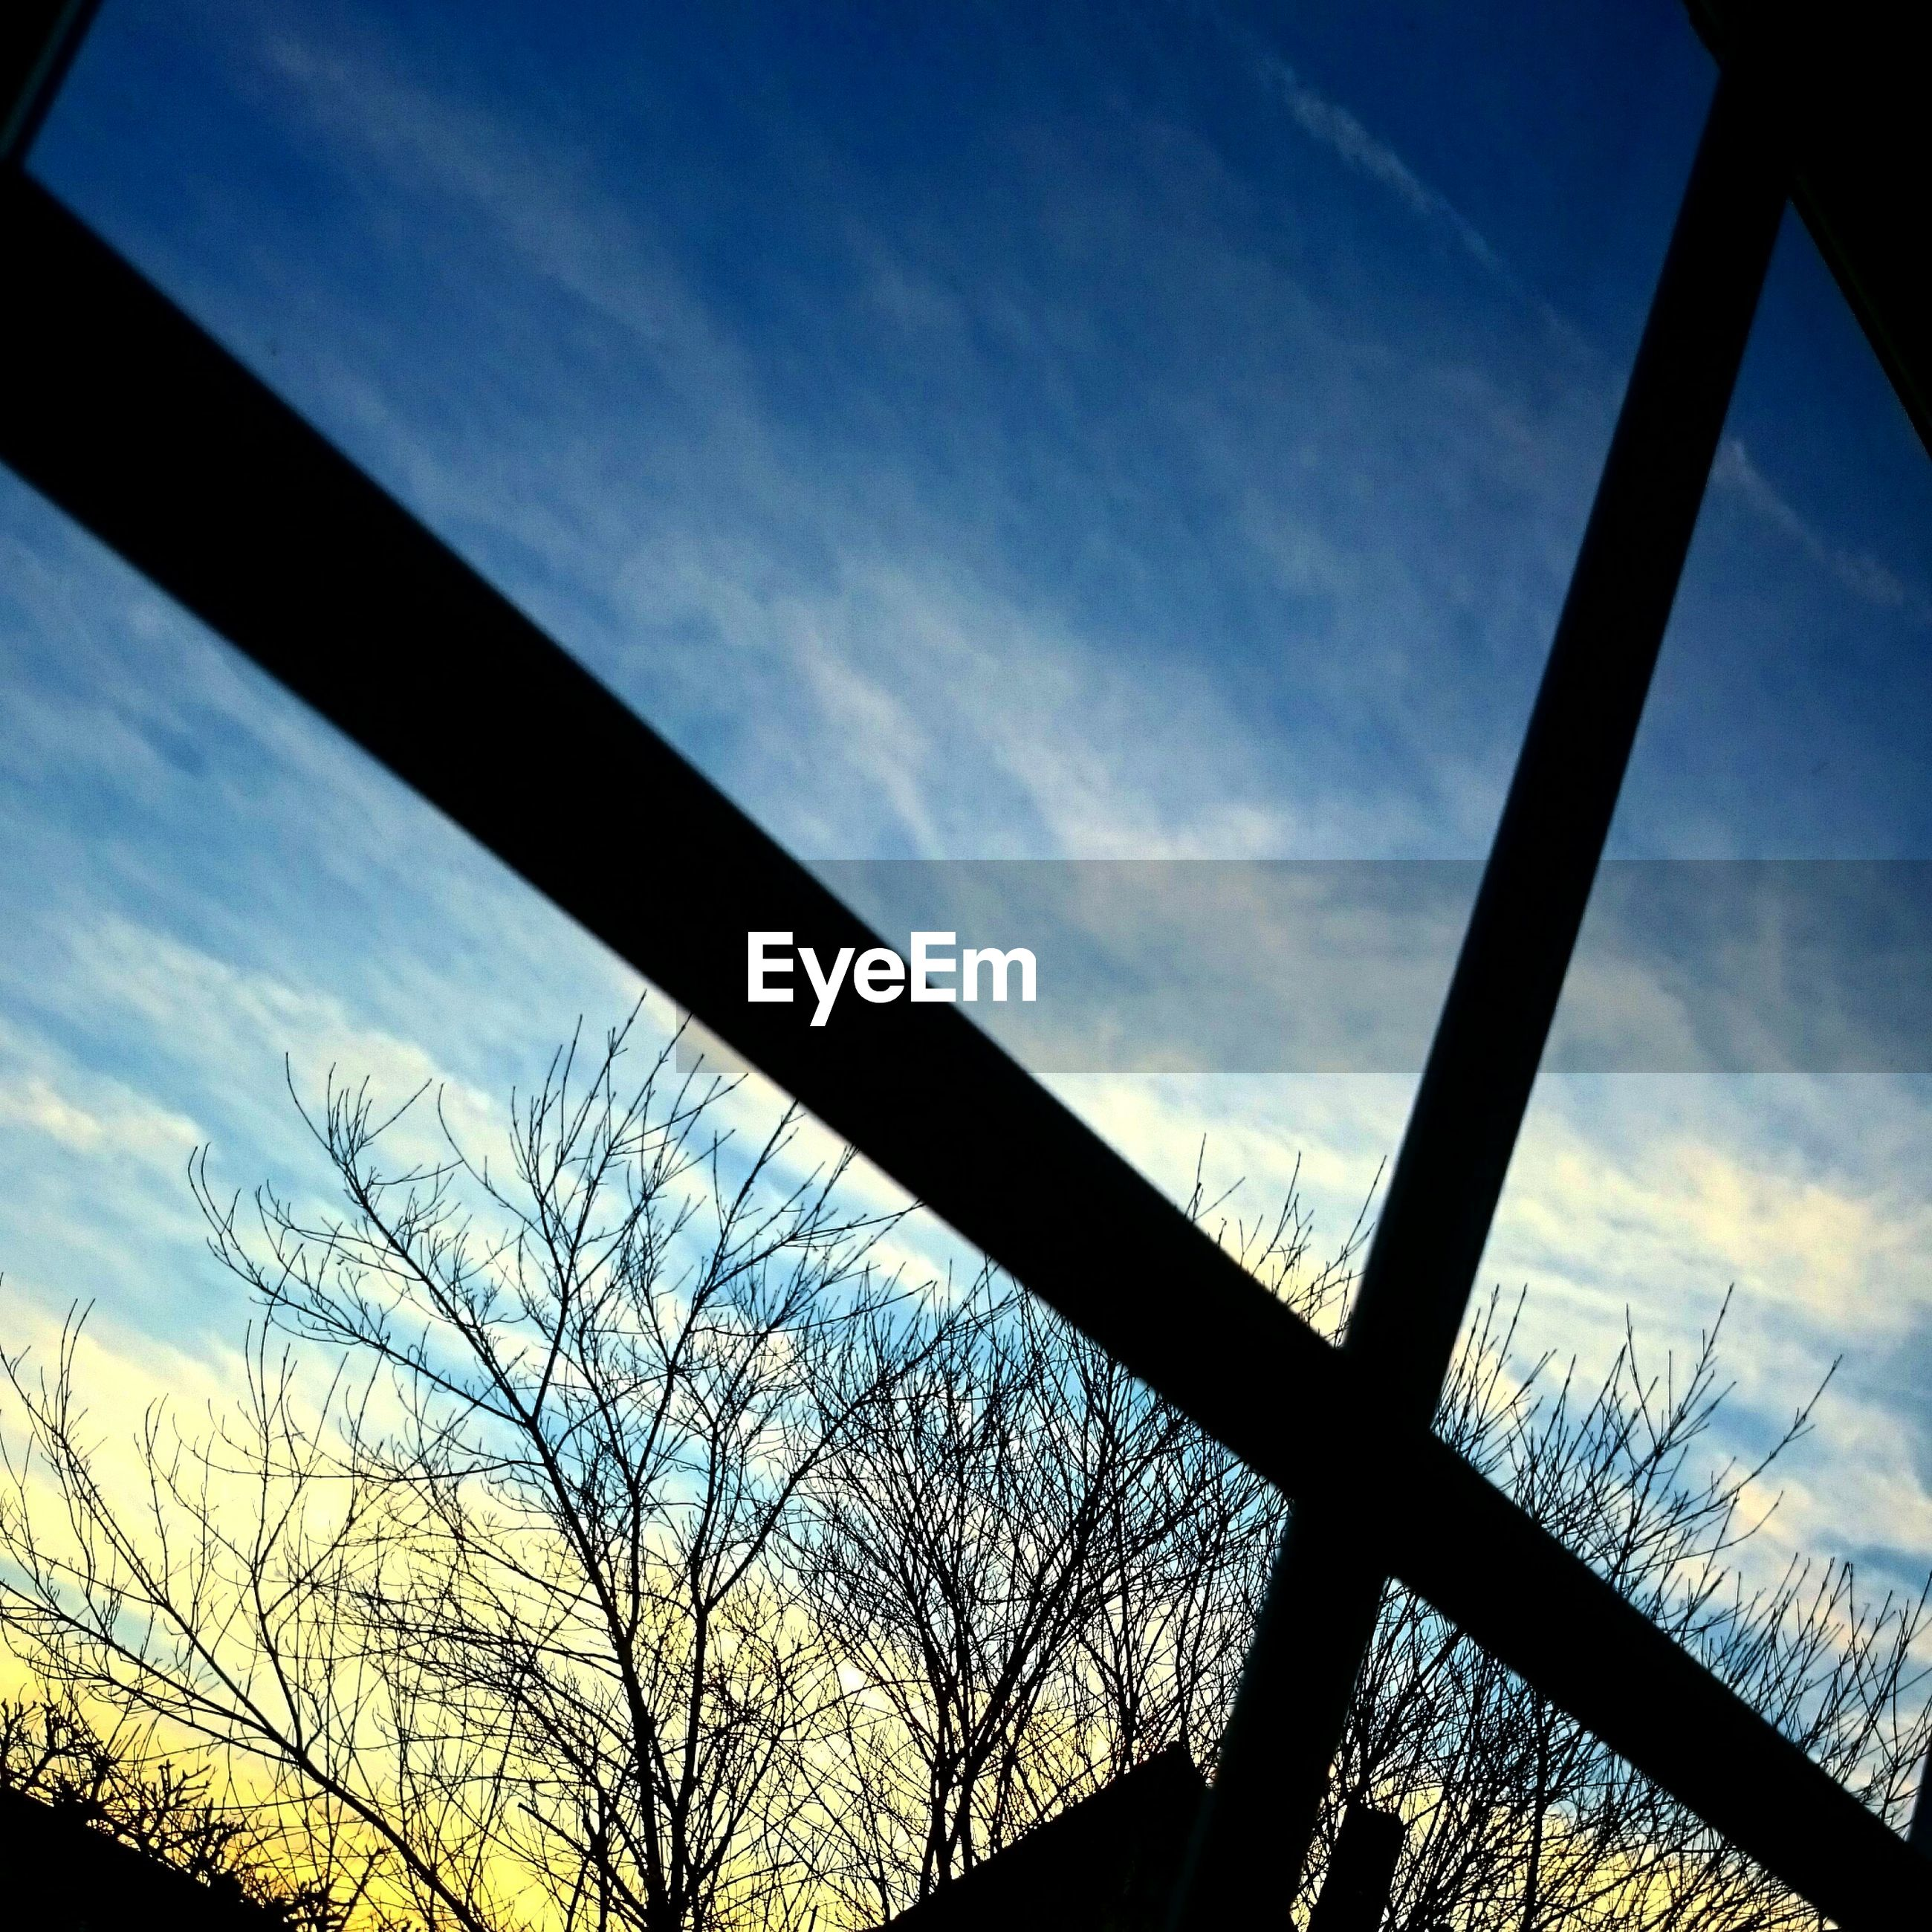 low angle view, silhouette, sky, cloud - sky, blue, sunset, tree, built structure, cloud, architecture, bare tree, no people, nature, dusk, outdoors, cloudy, backgrounds, connection, branch, high section